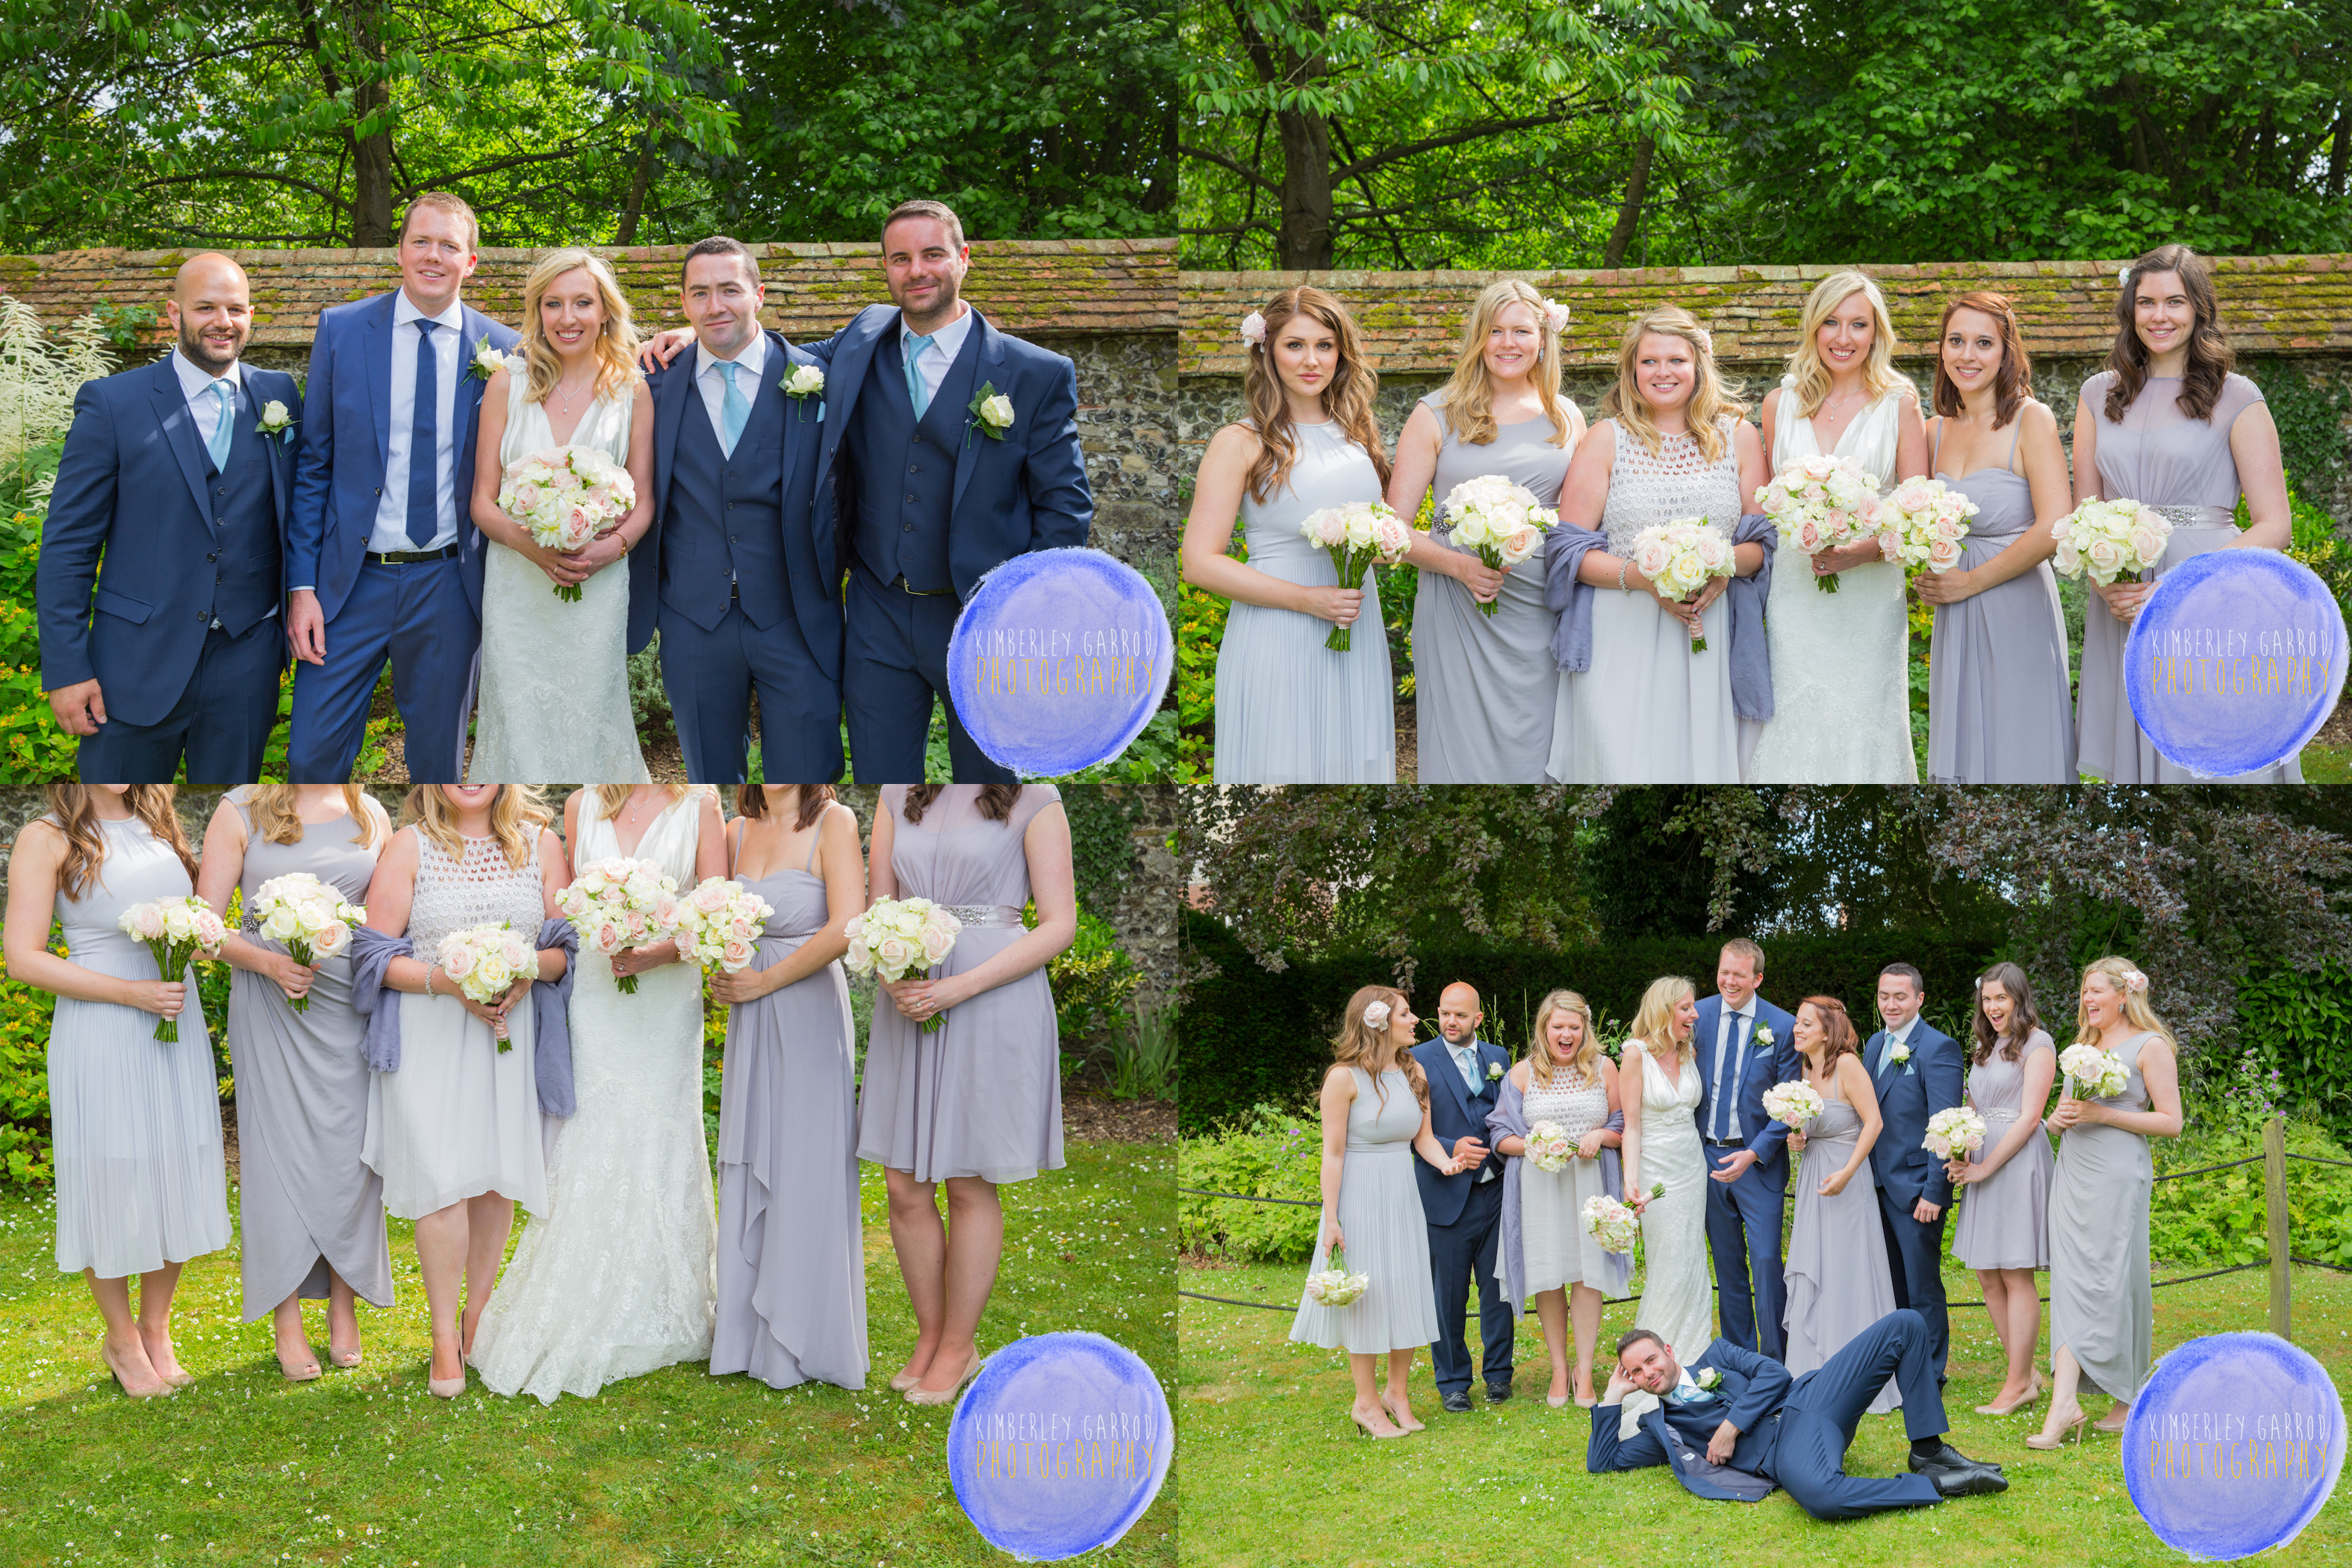 Winchester Wedding Photographer Kimberley Garrod-64